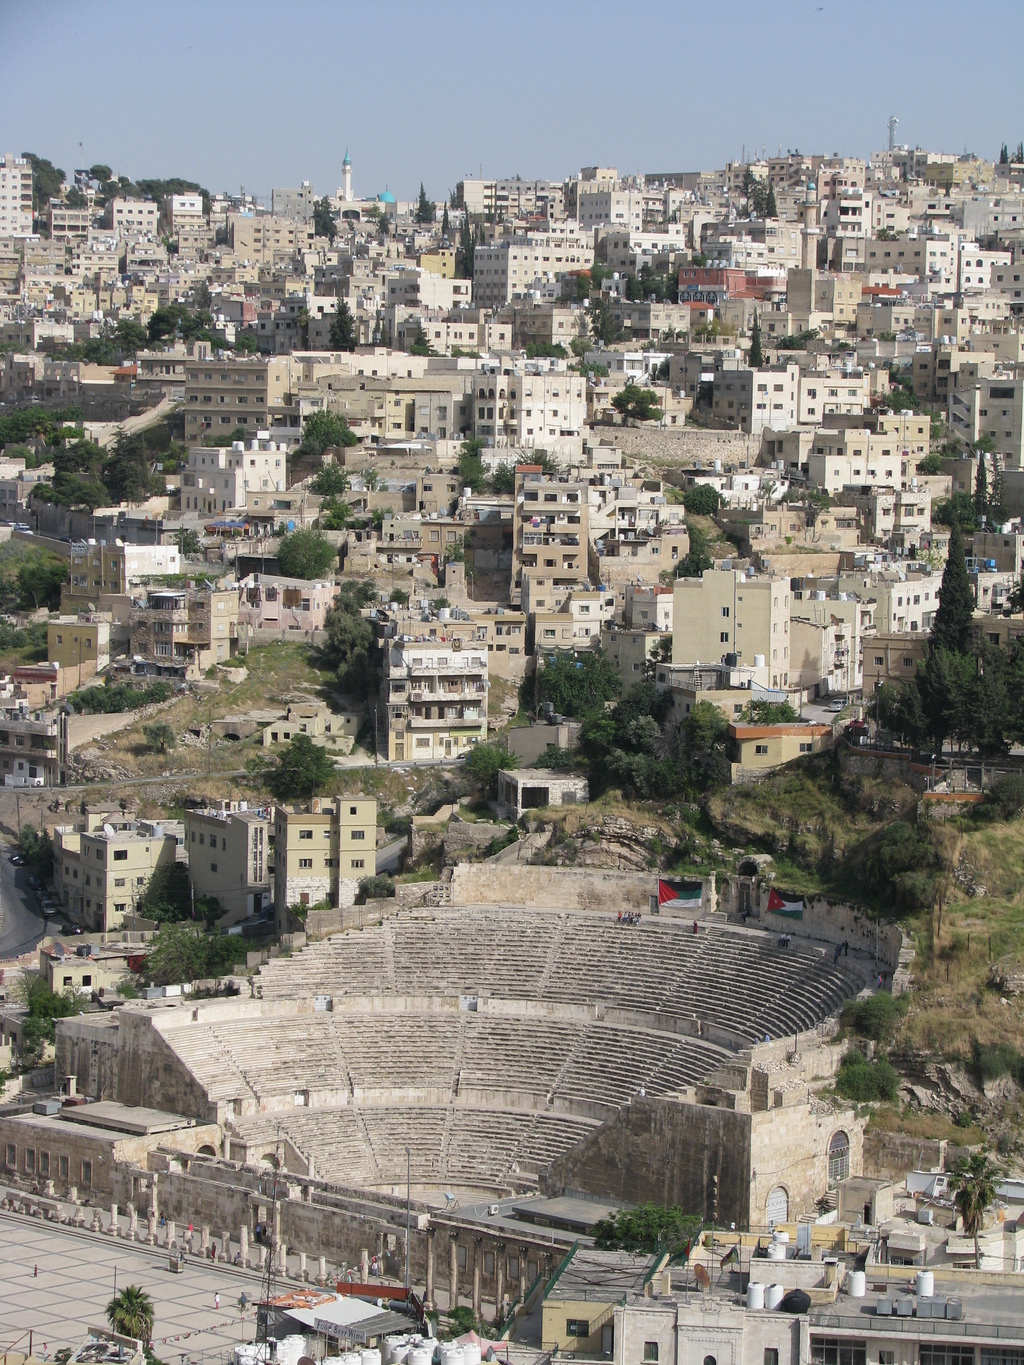 This April 21, 2016 photo shows the ancient Roman theater and a sand-colored panorama of Jordan's capital, Amman, as seen from the monu...